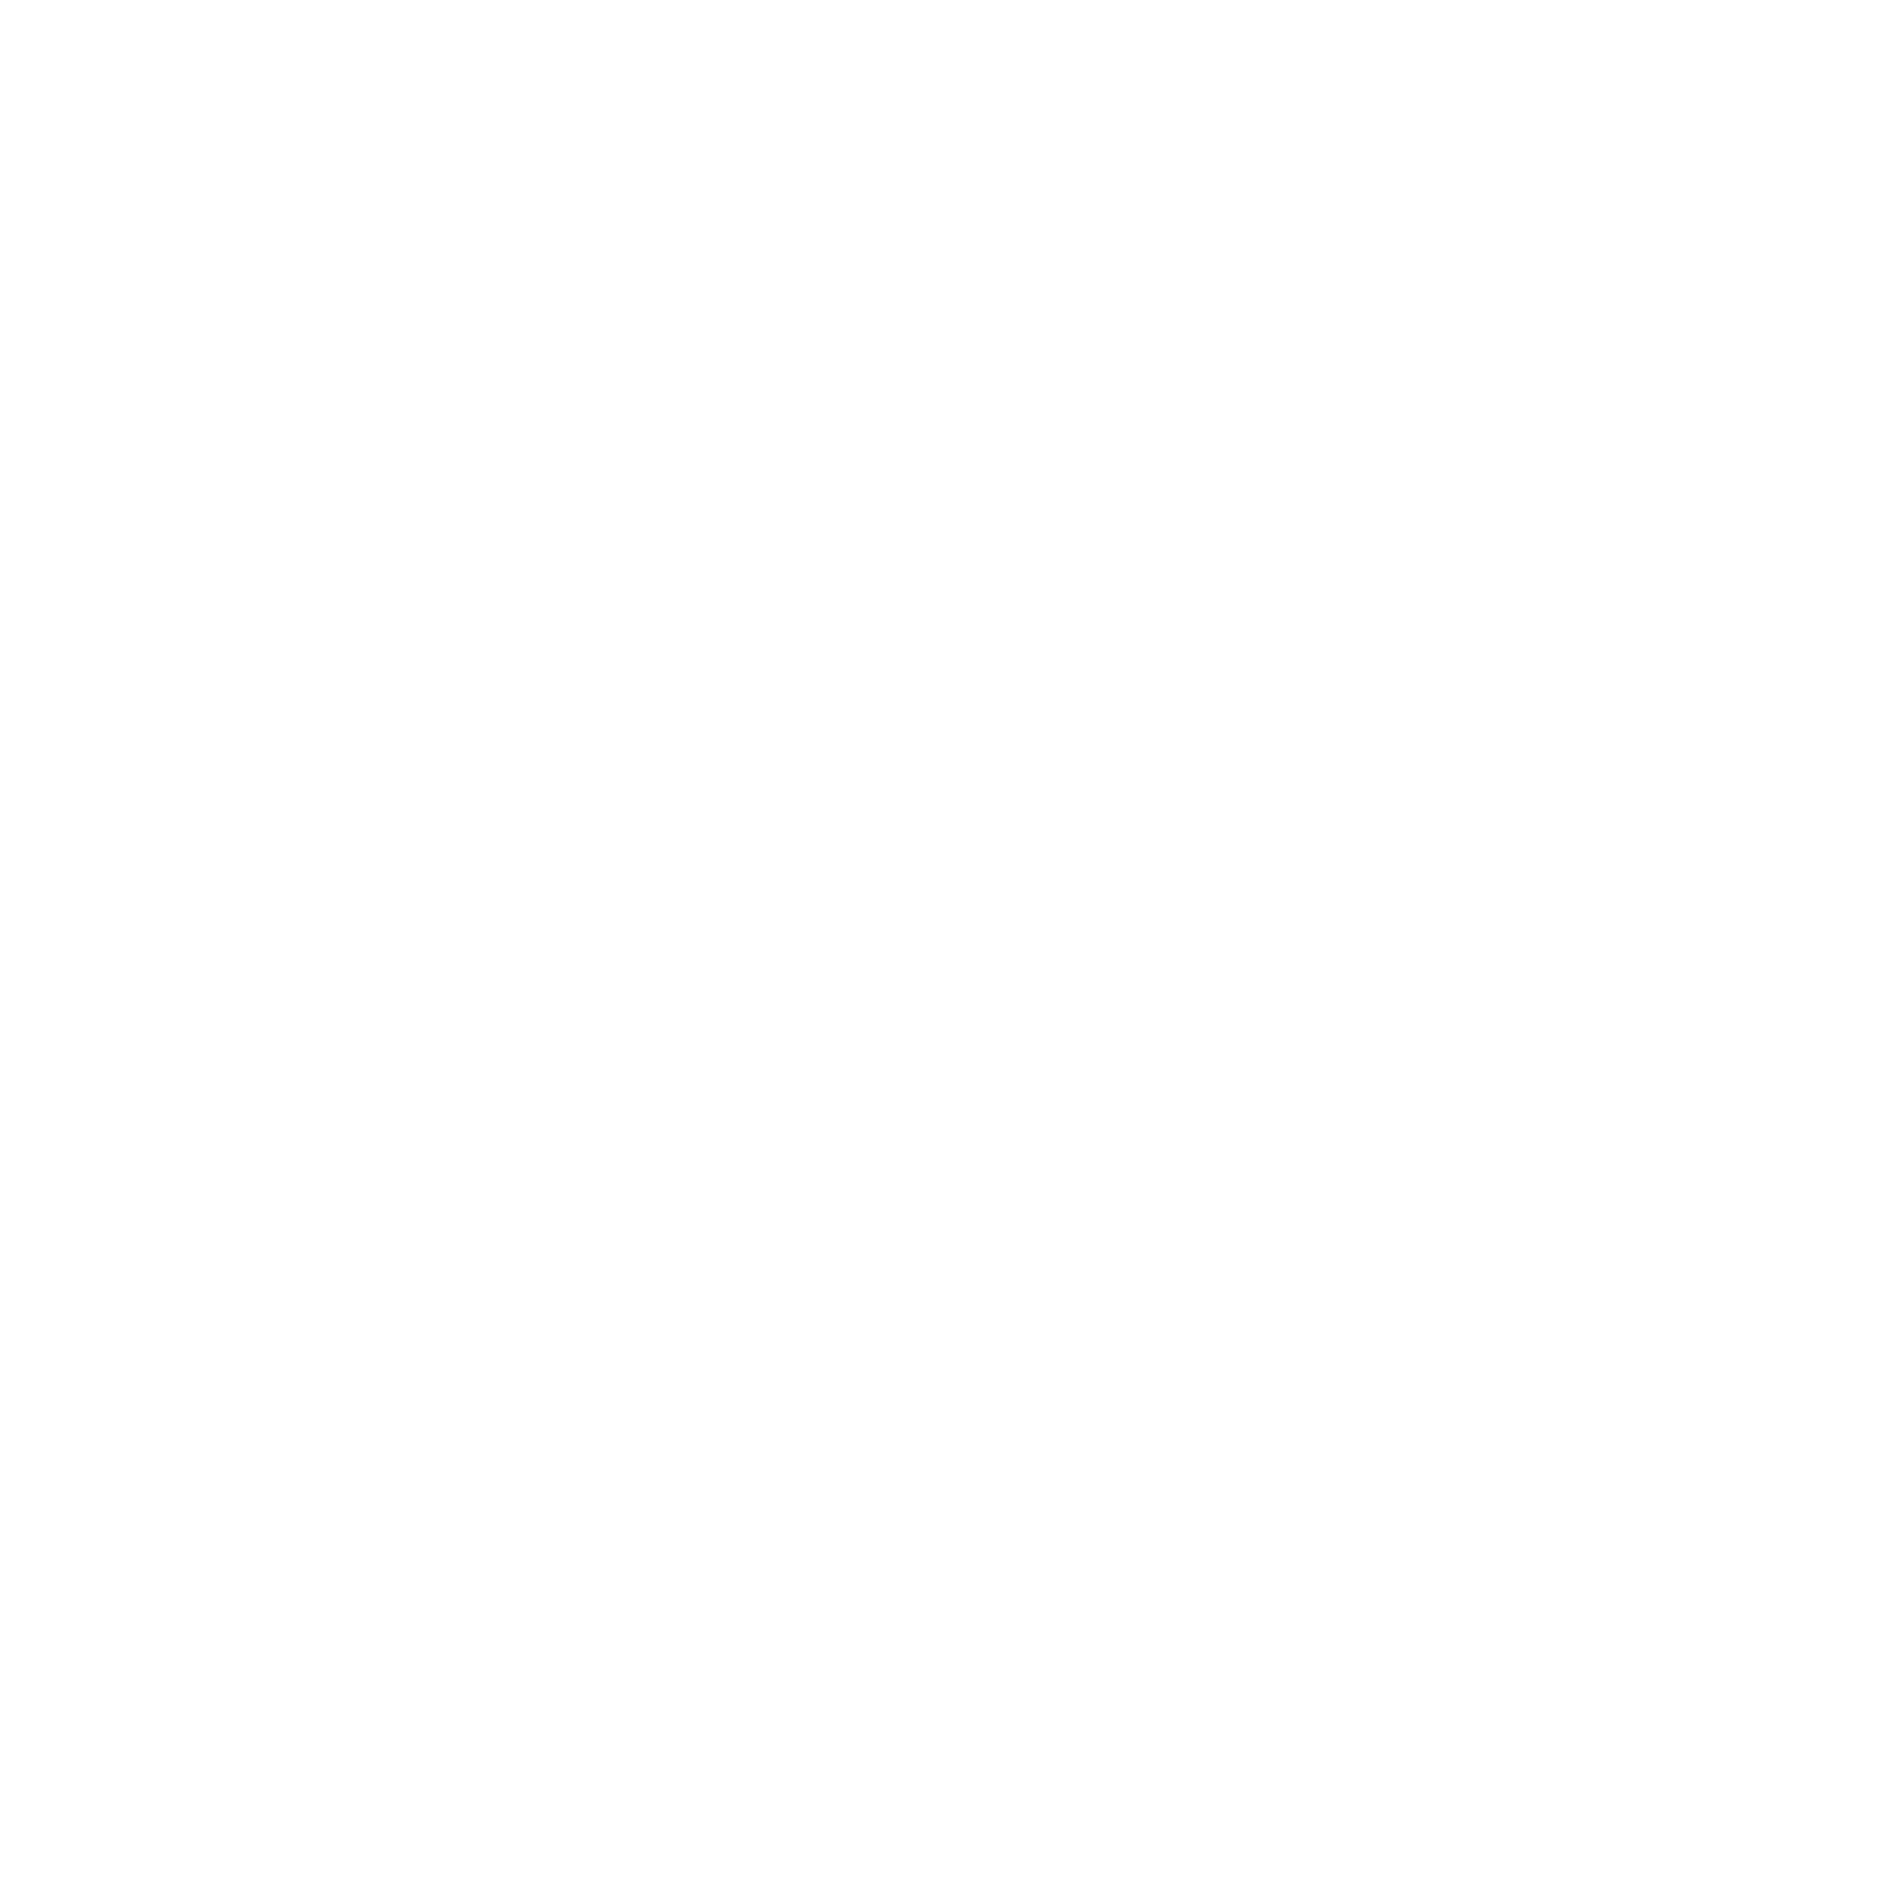 Full Frame Camera Co.